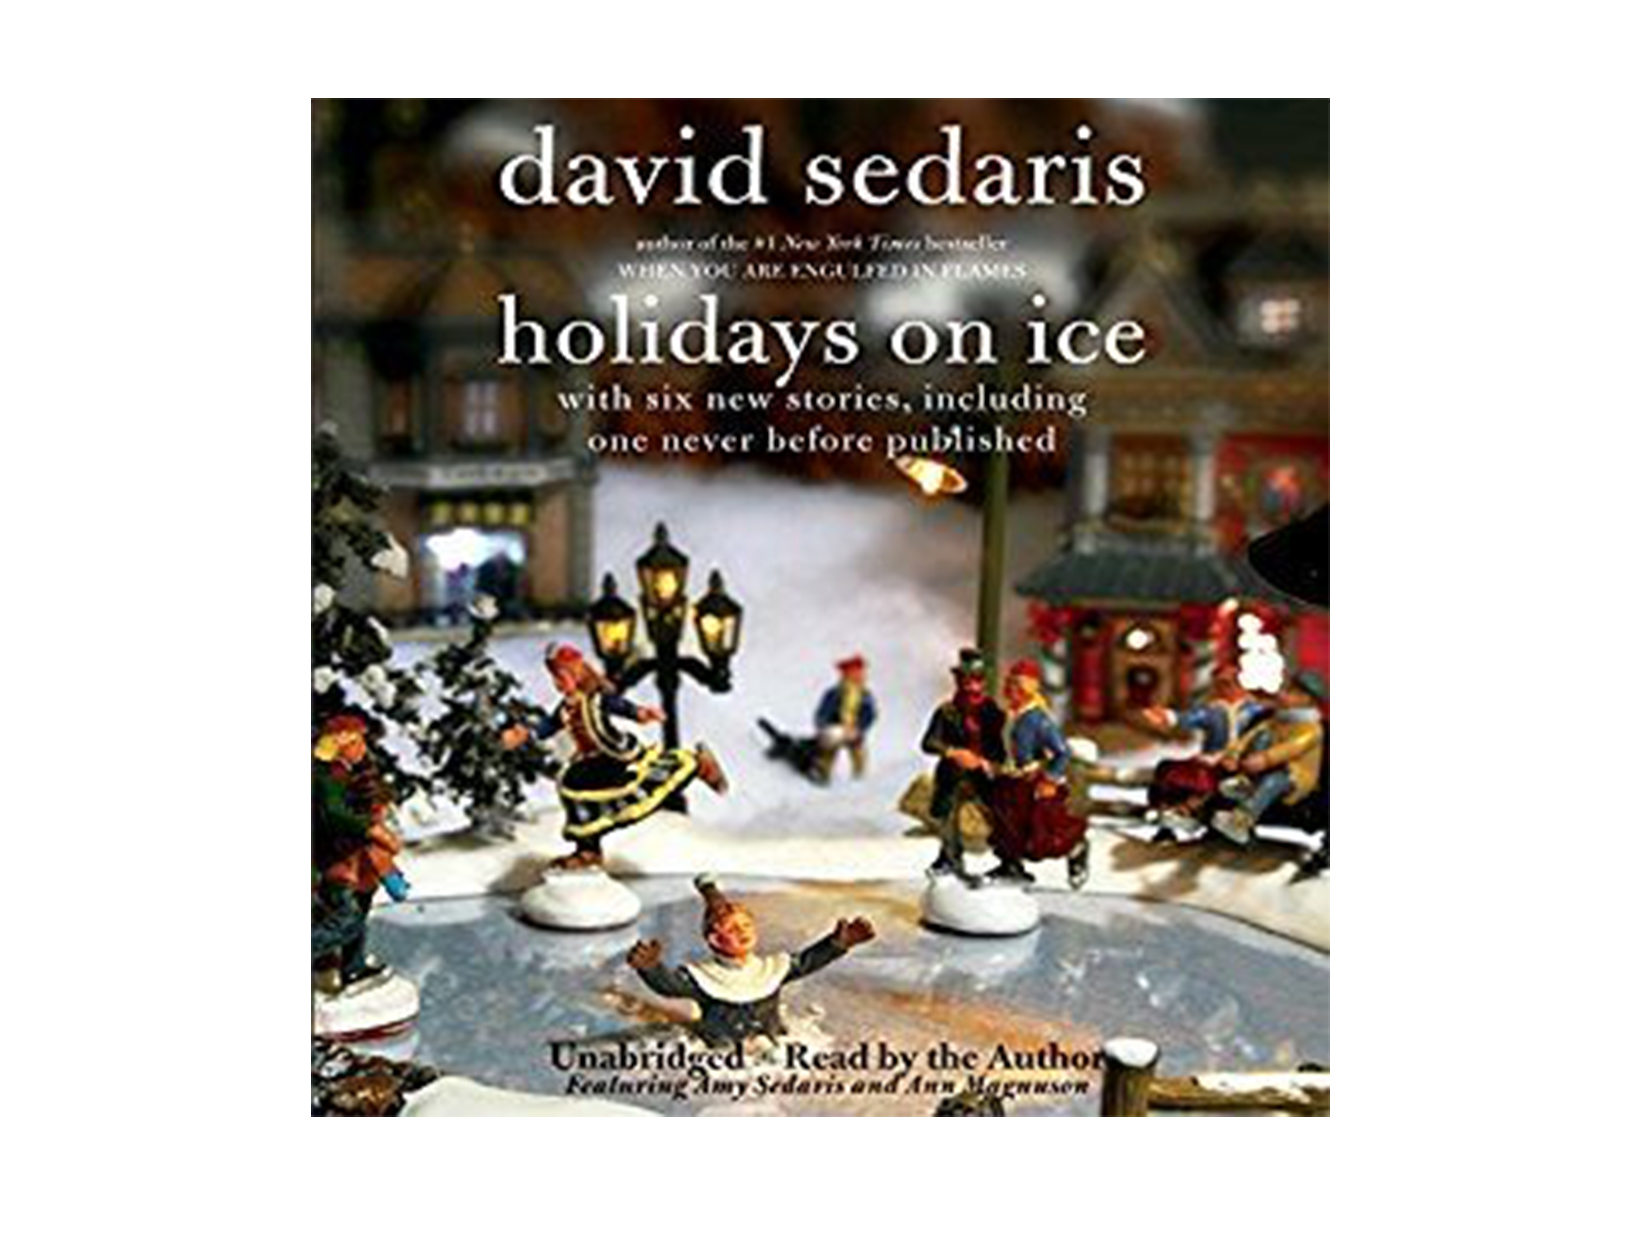 Holidays on Ice, written and read by David Sedaris